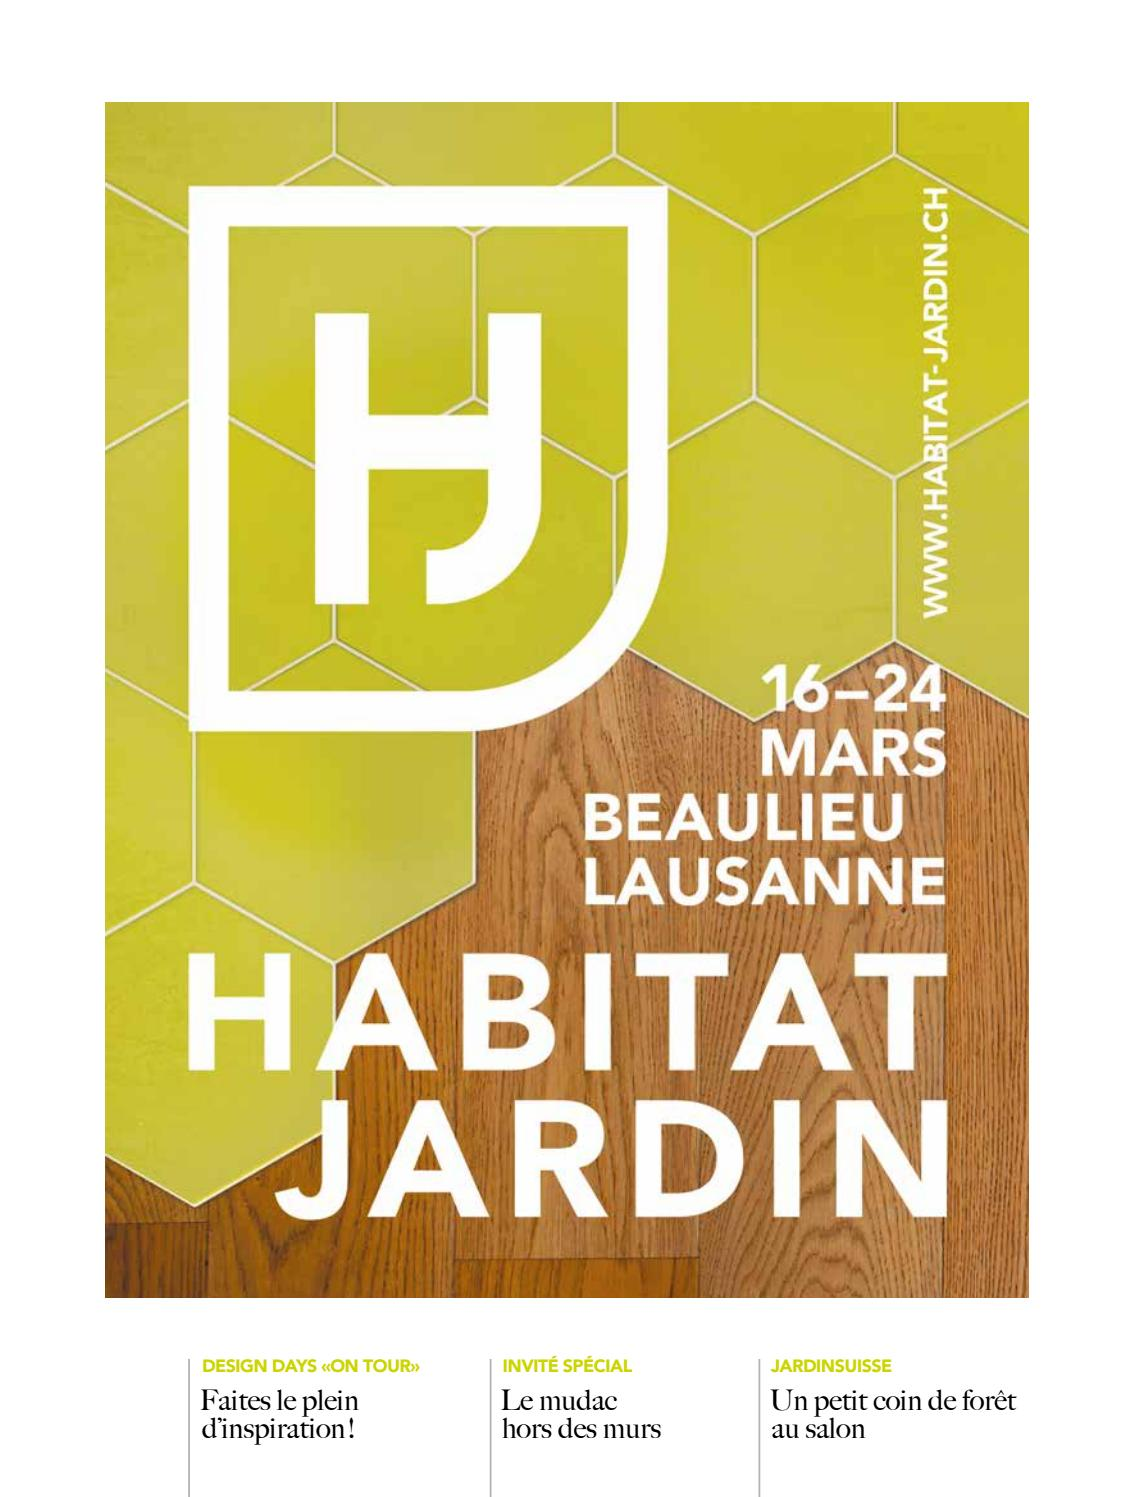 Table De Jardin Extensible En solde Inspirant Habitat Jardin 2019 by Inédit Publications Sa issuu Of 31 Nouveau Table De Jardin Extensible En solde